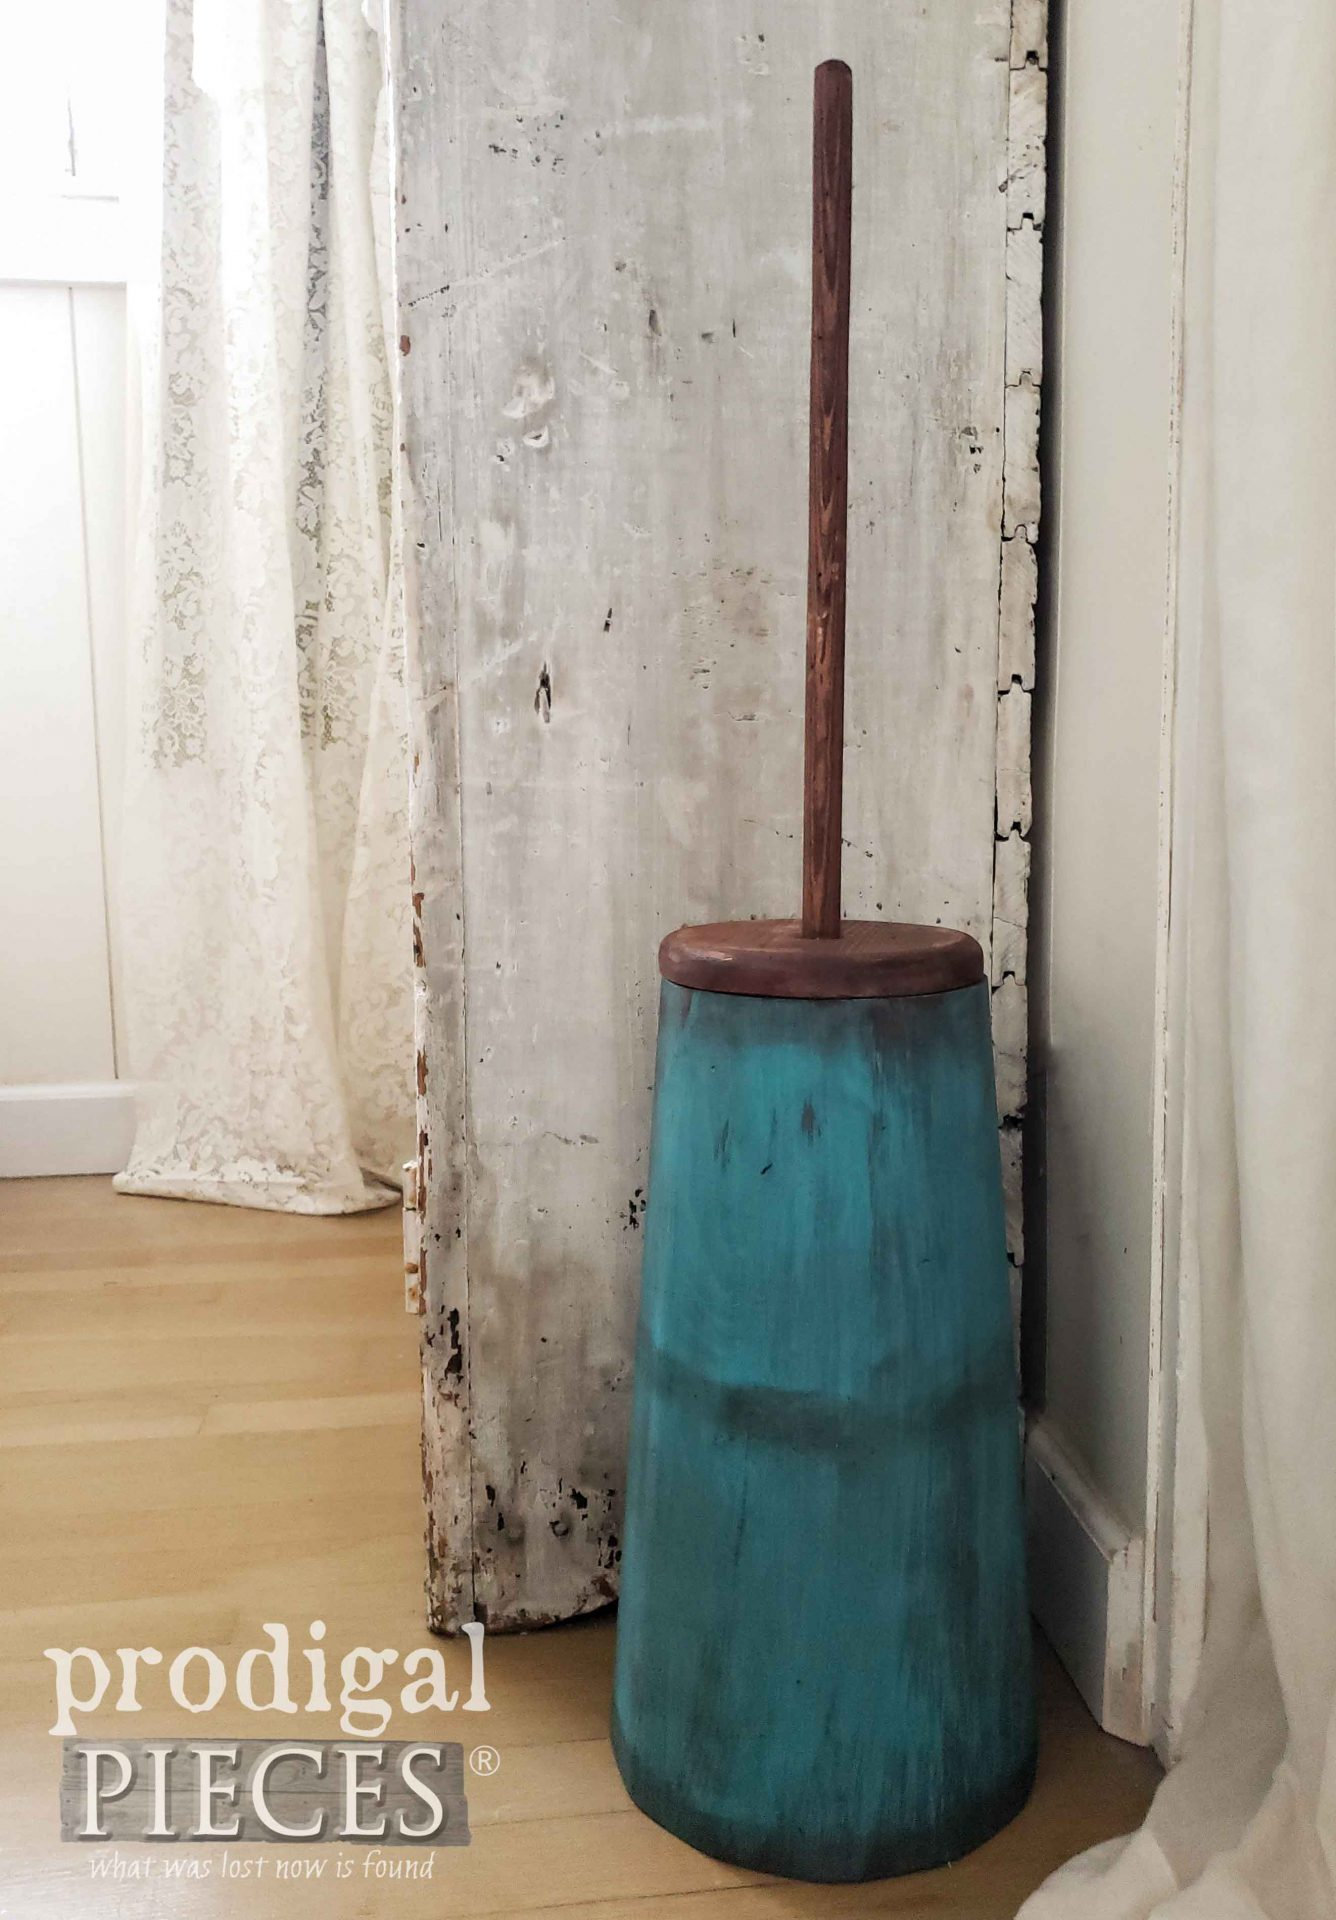 Teal Blue Antique Butter Churn Created by Larissa of Prodigal Pieces | prodigalpieces.com #prodigalpieces #farmhouse #vintage #antique #home #homedecor